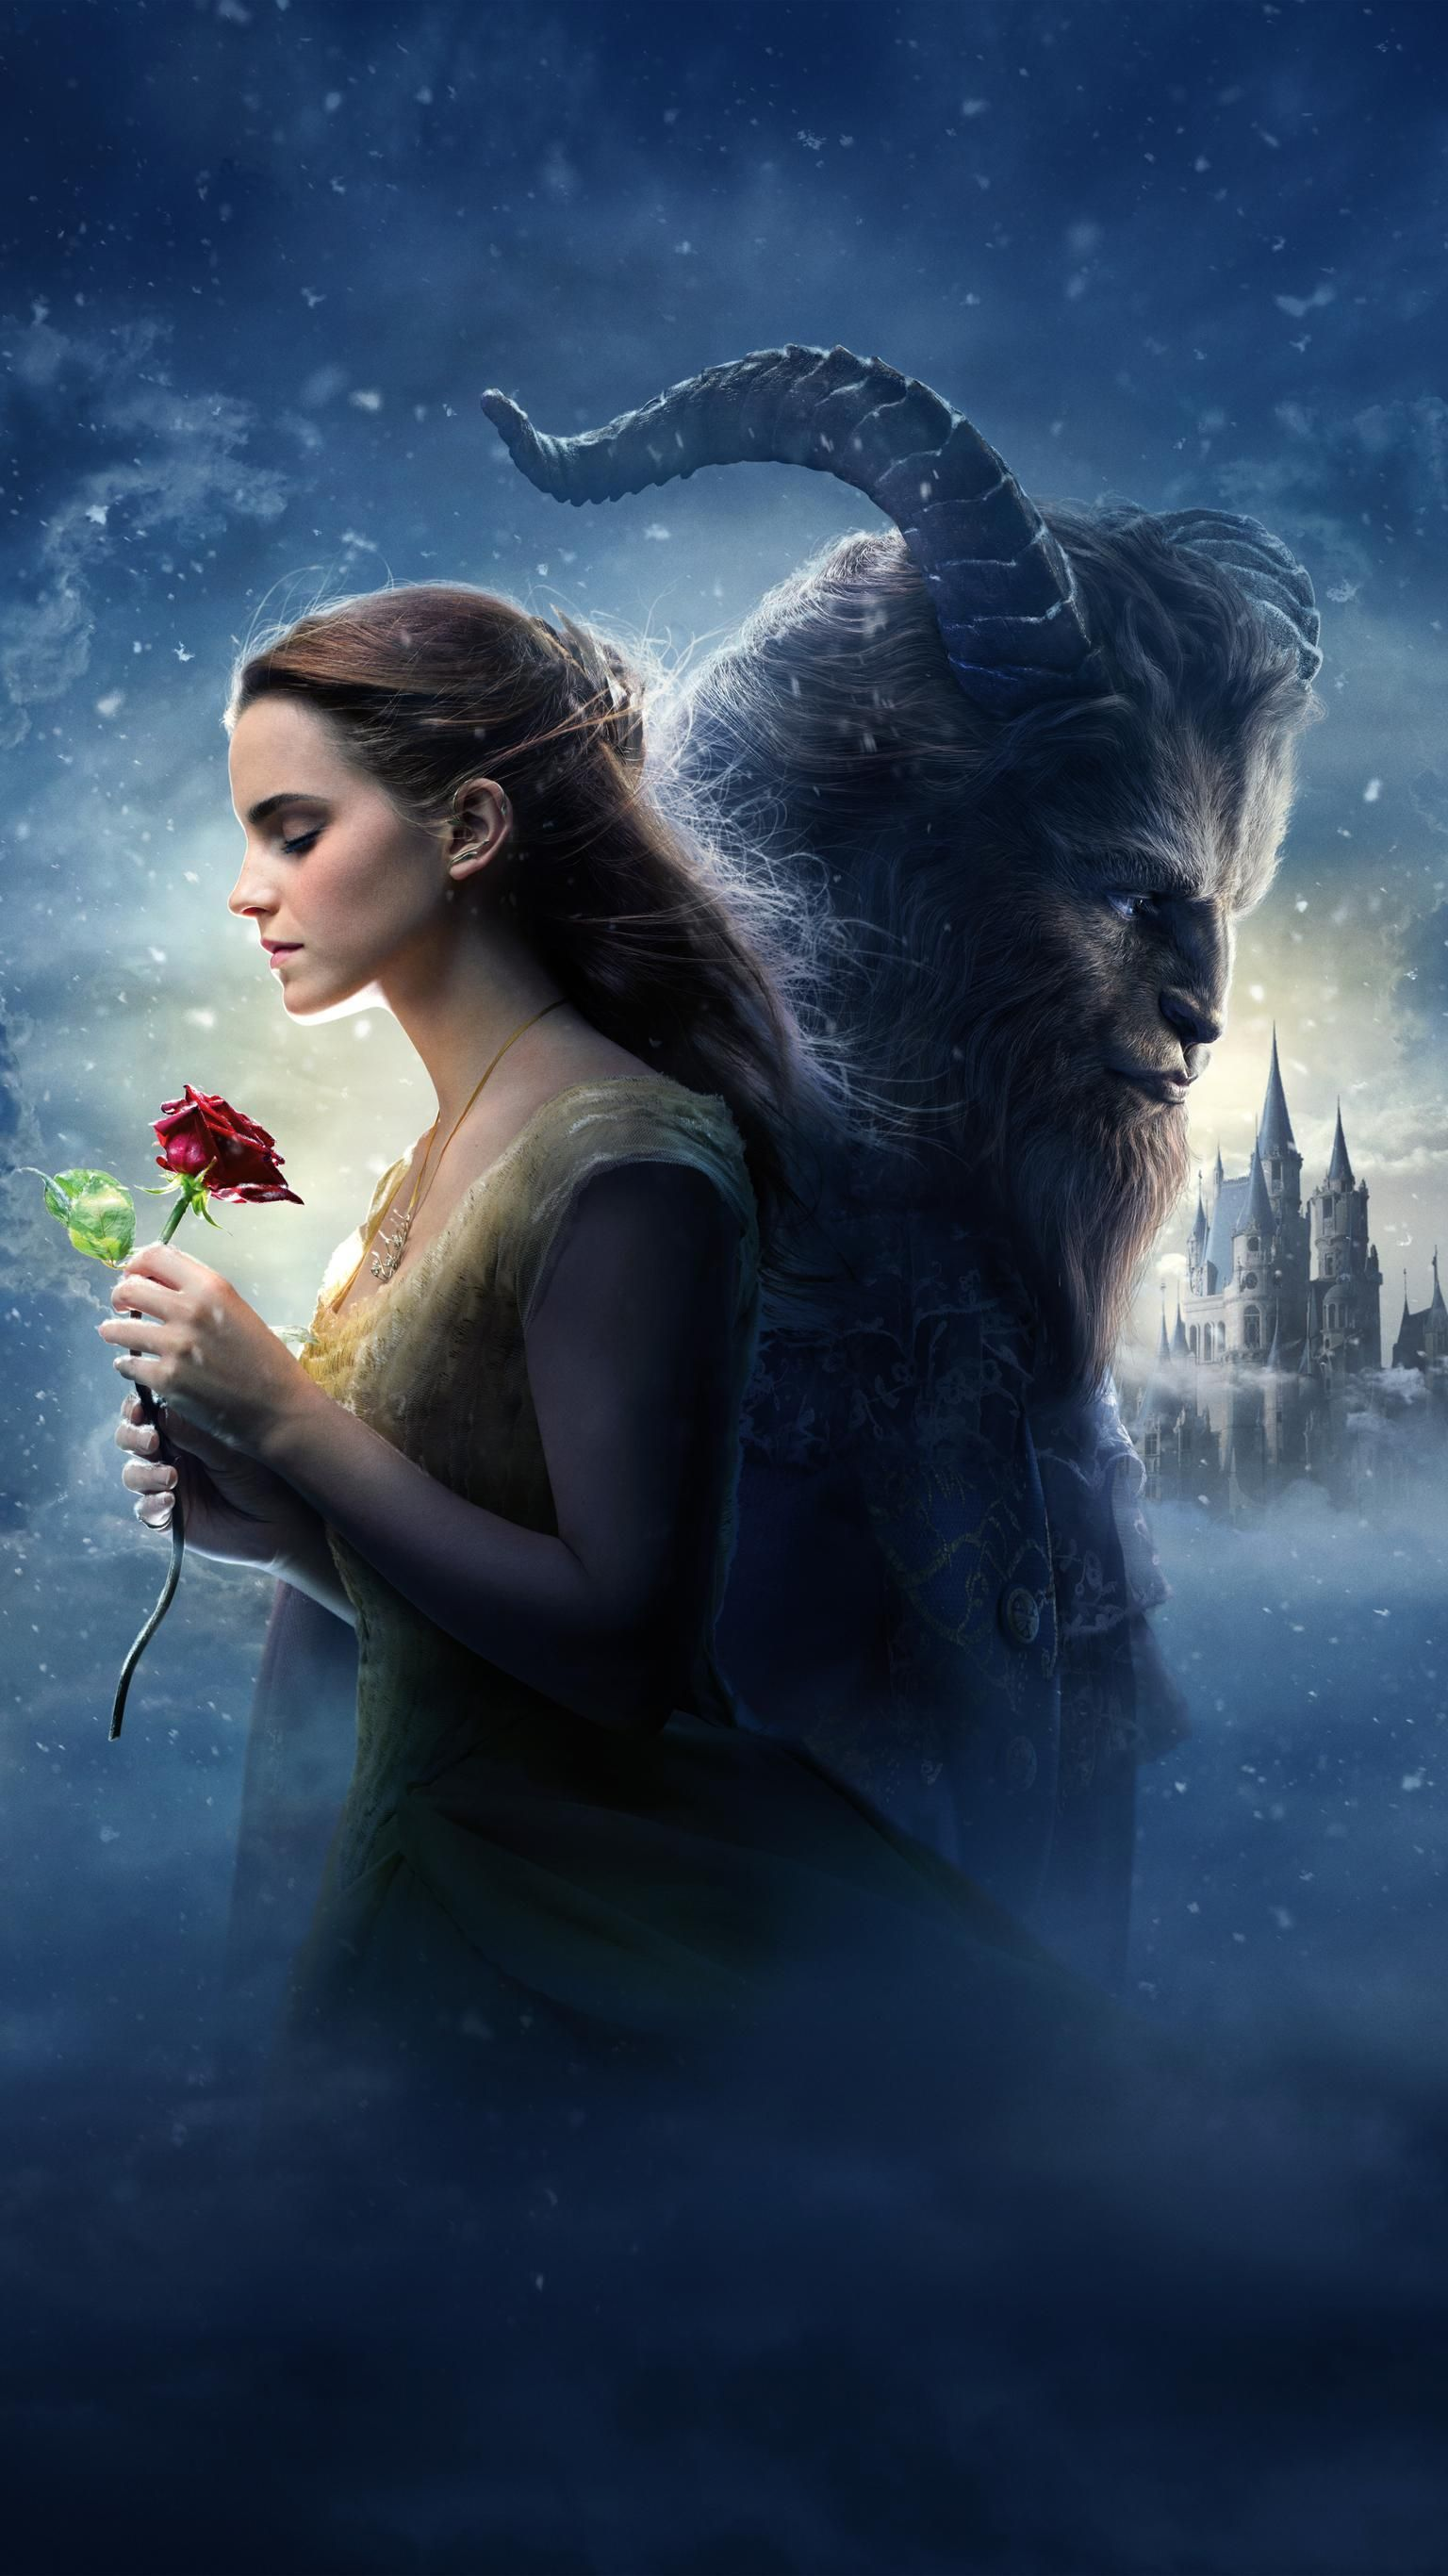 Beauty And The Beast 2017 Phone Wallpaper Moviemania